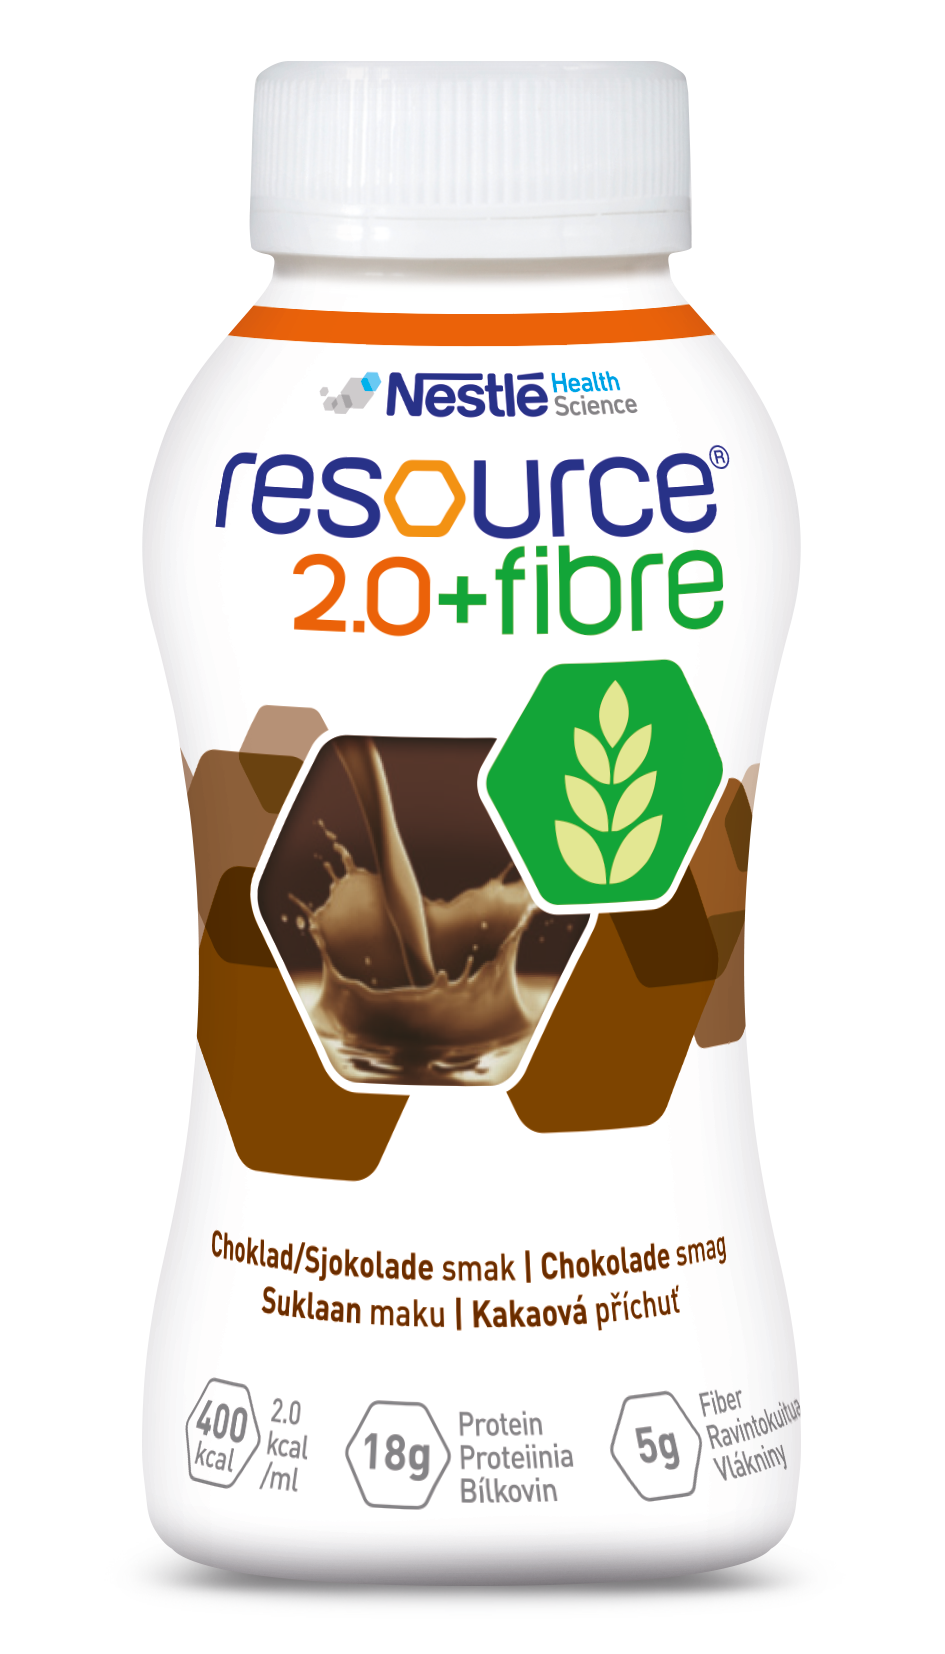 Resource 2.0 fibre